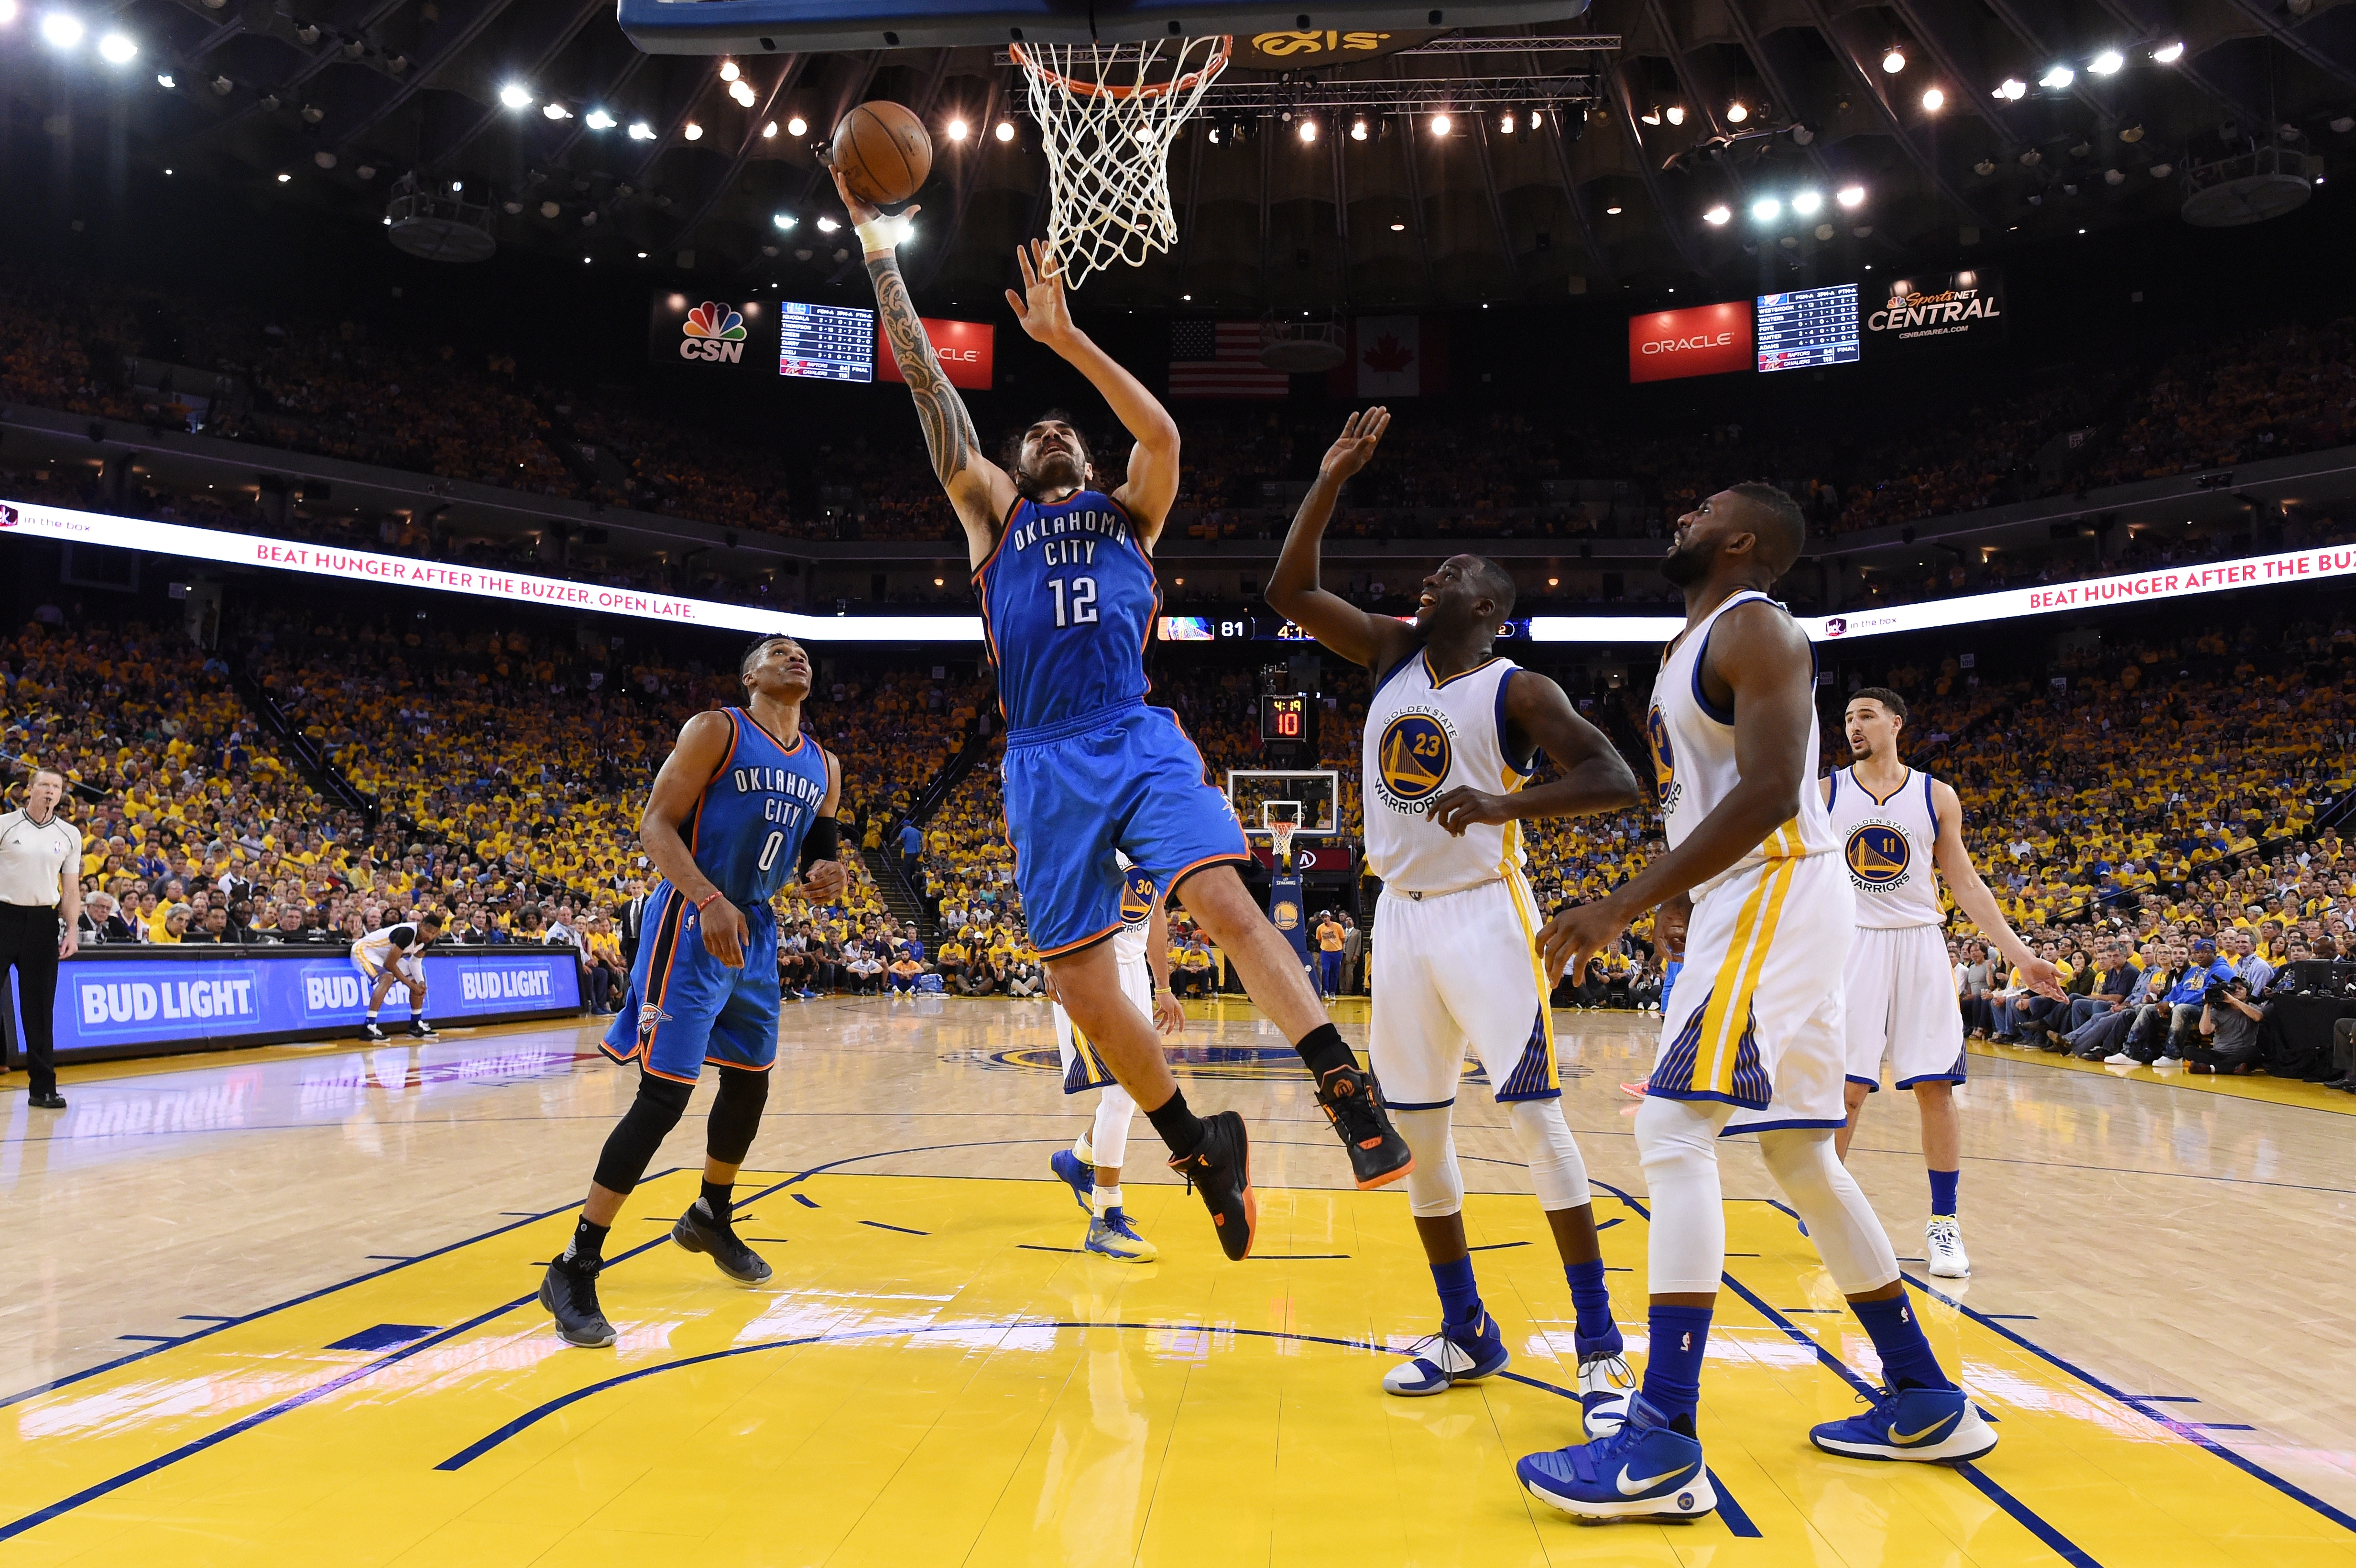 Steven Adams (12) of the Oklahoma City Thunder goes up for a shot against the Golden State Warriors during Game Two of the Western Conference NBA Finals at ORACLE Arena in Oakland, California. (Photo by Thearon W. Henderson/Getty Images)